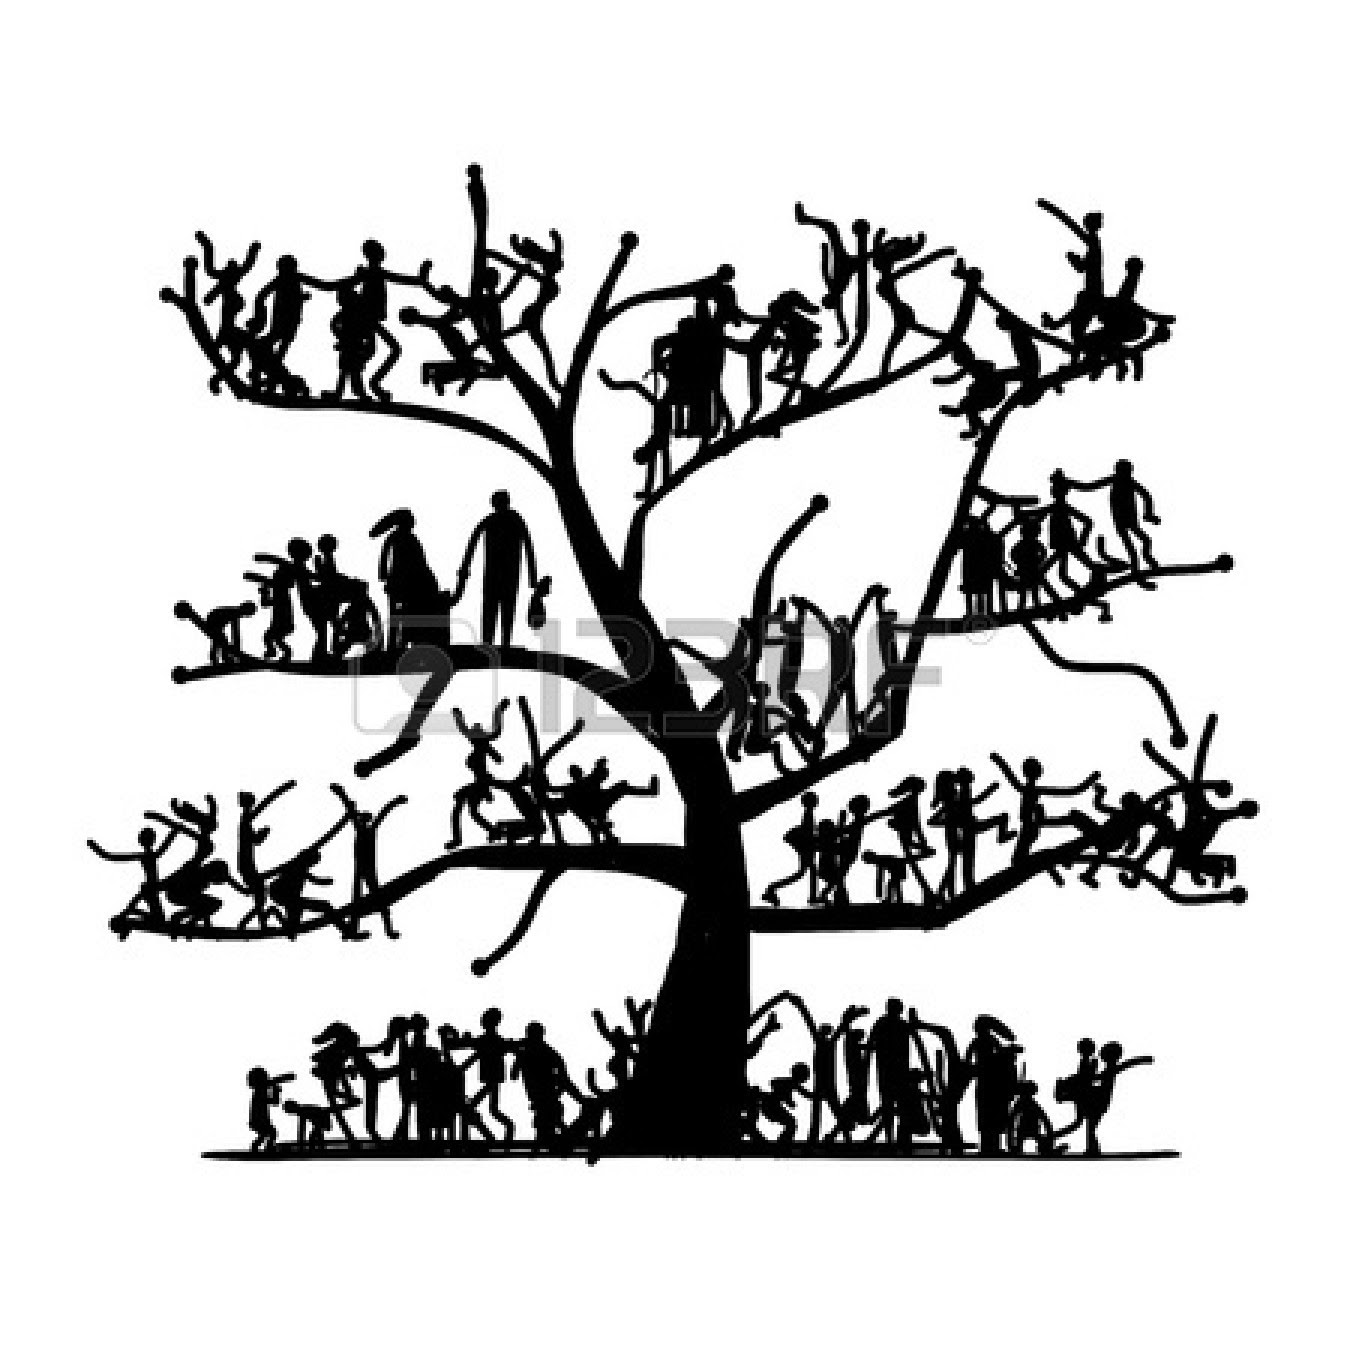 Png Clipart Family Tree Clip Art Vector